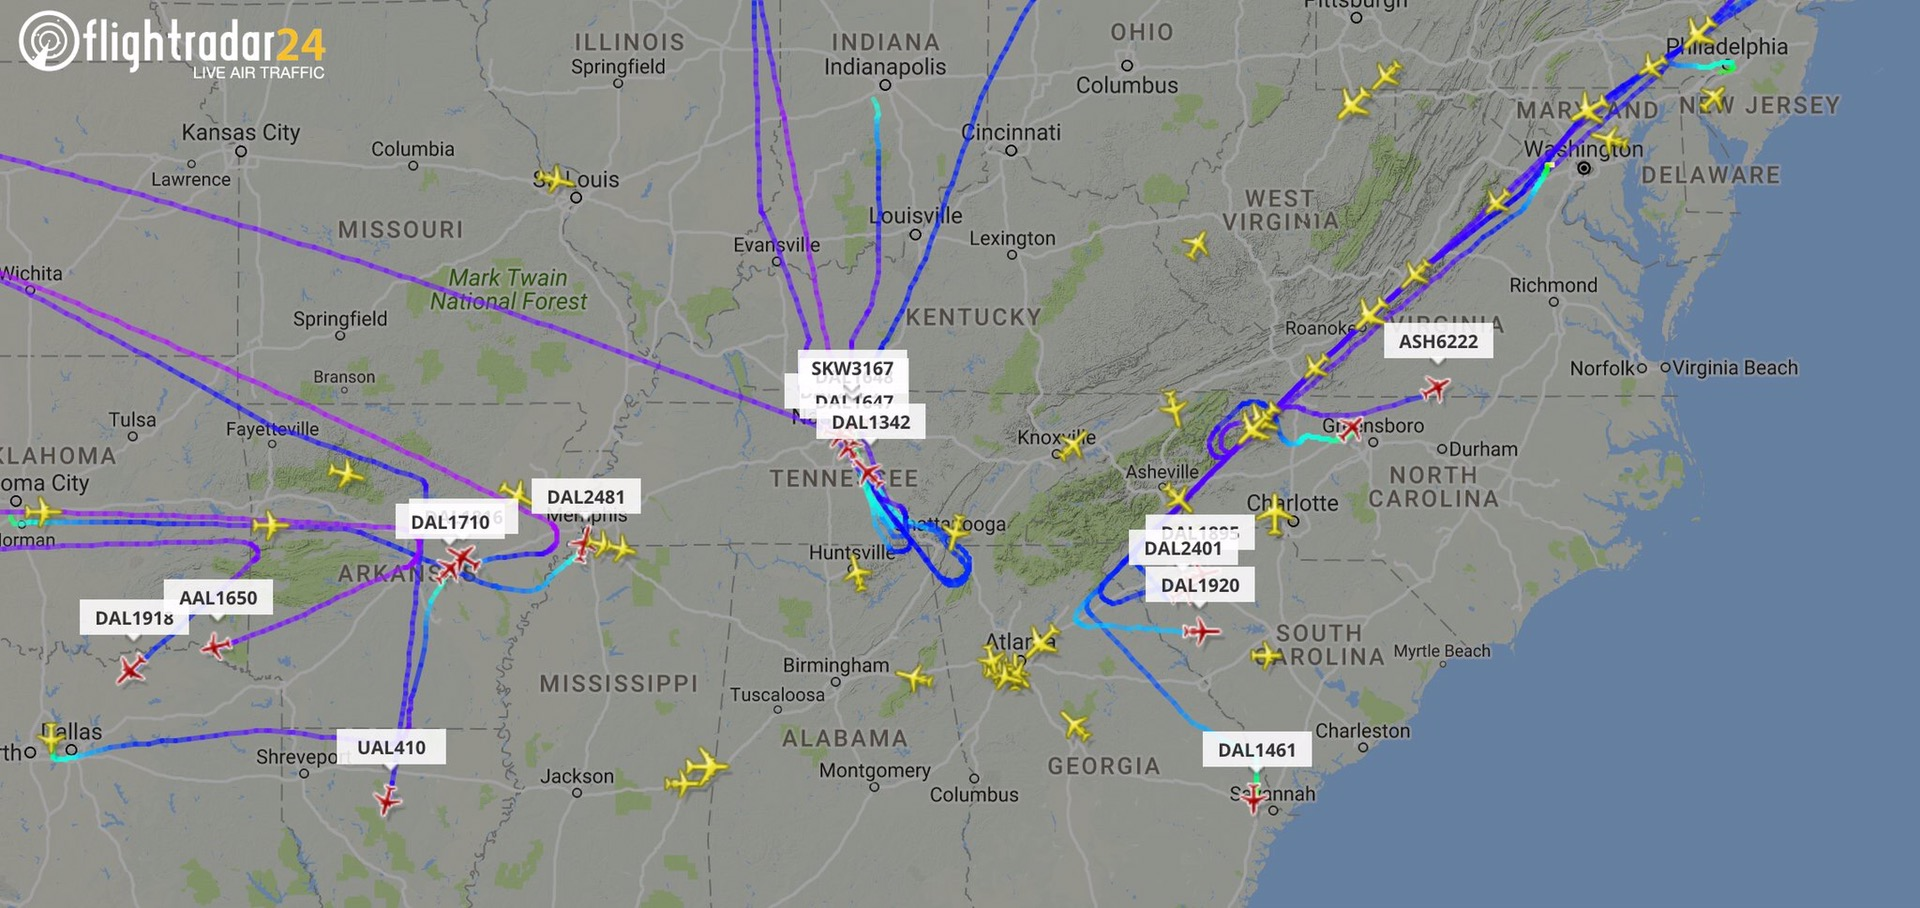 THE HARTSFIELDJACKSON ATLANTA INTERNATIONAL AIRPORT SUFFERS A POWER